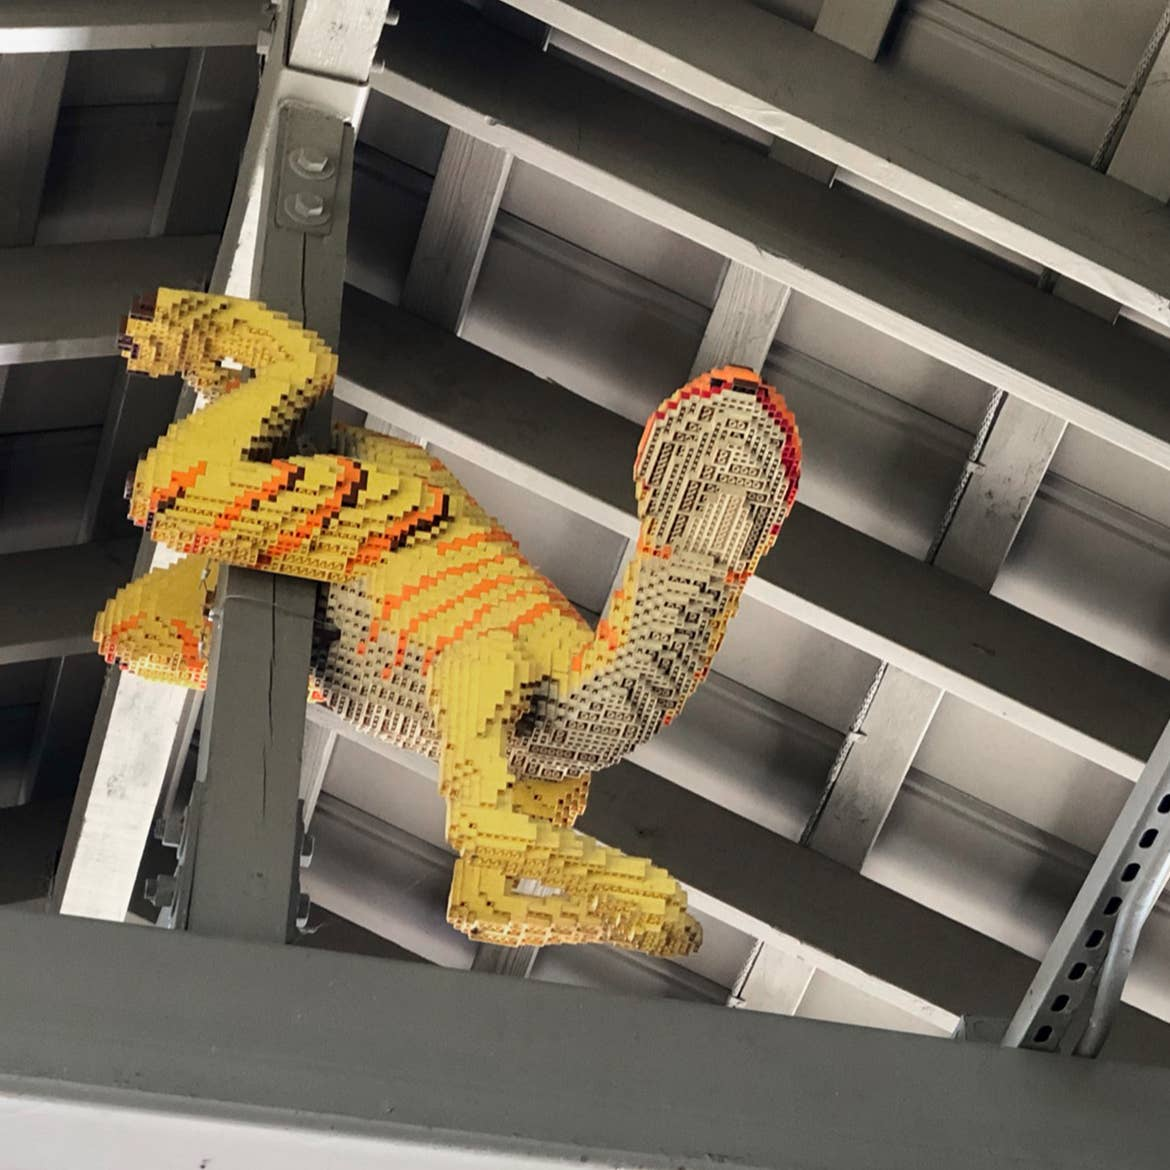 A dinosaur figurine made of LEGOS hangs on a structural beam.